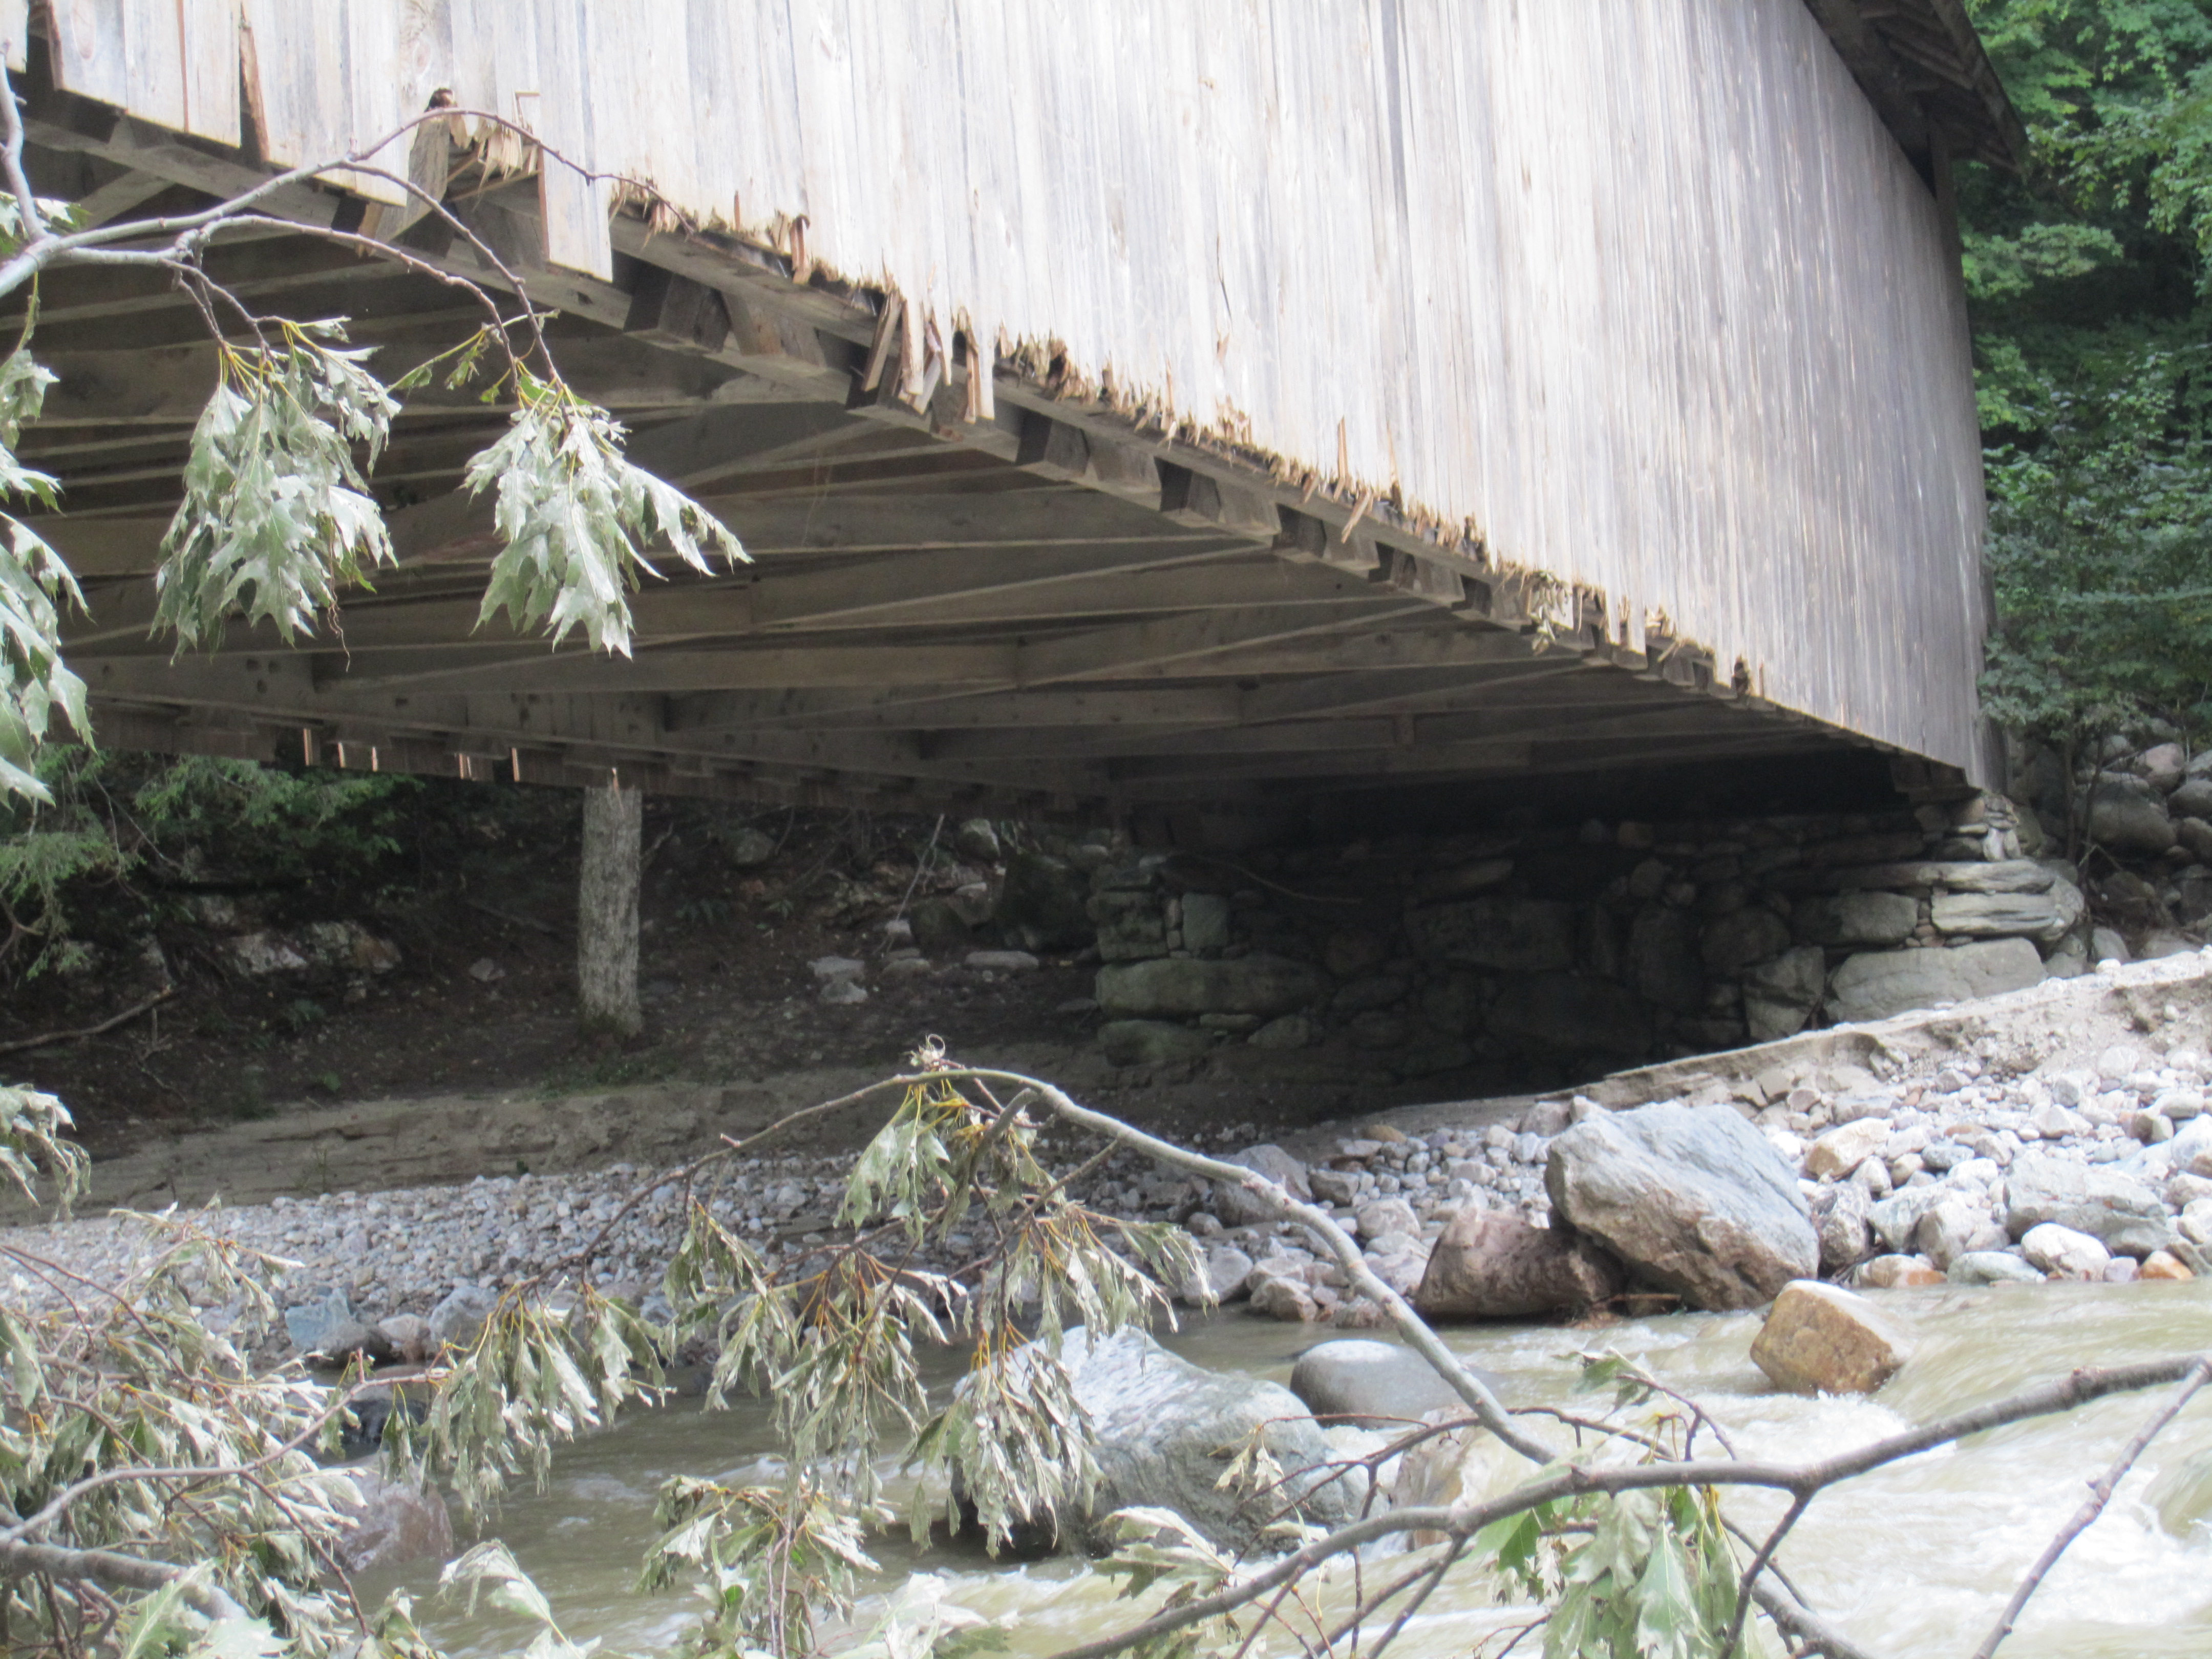 The underside of the bridge where some of the damage from flooding in 2011 is visible prior to being repaired.